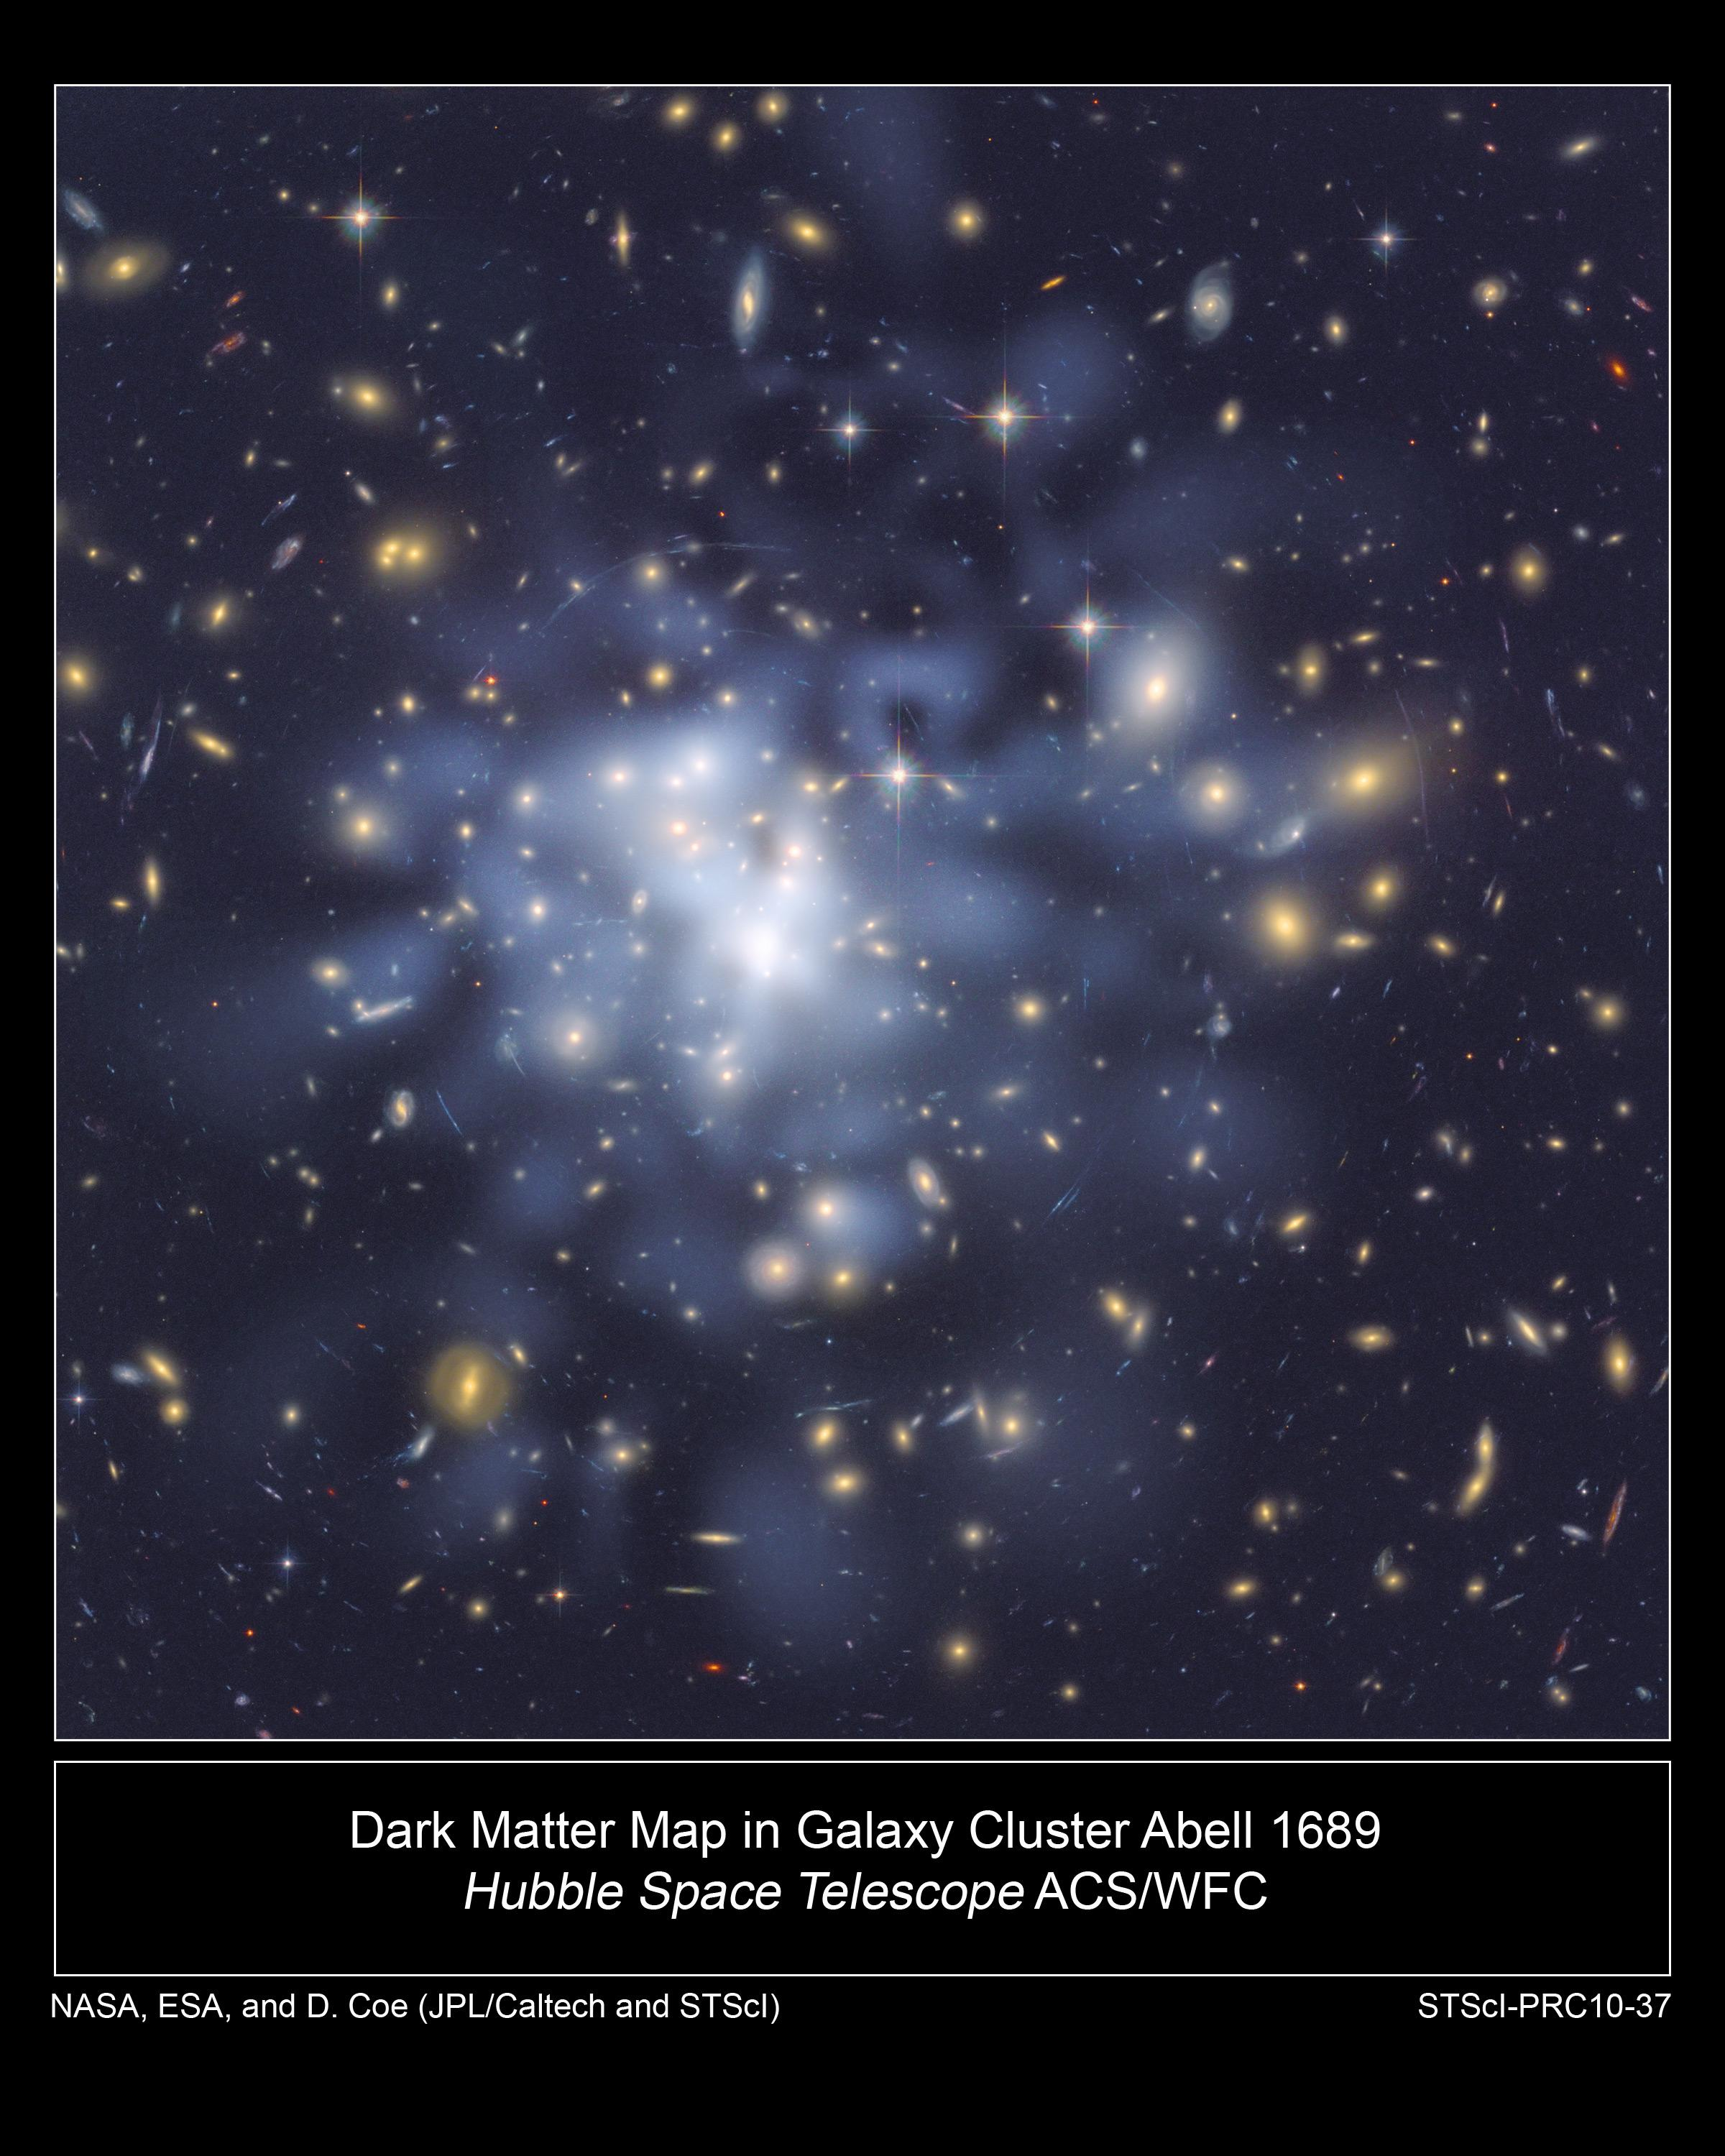 Nasa DarkMatter